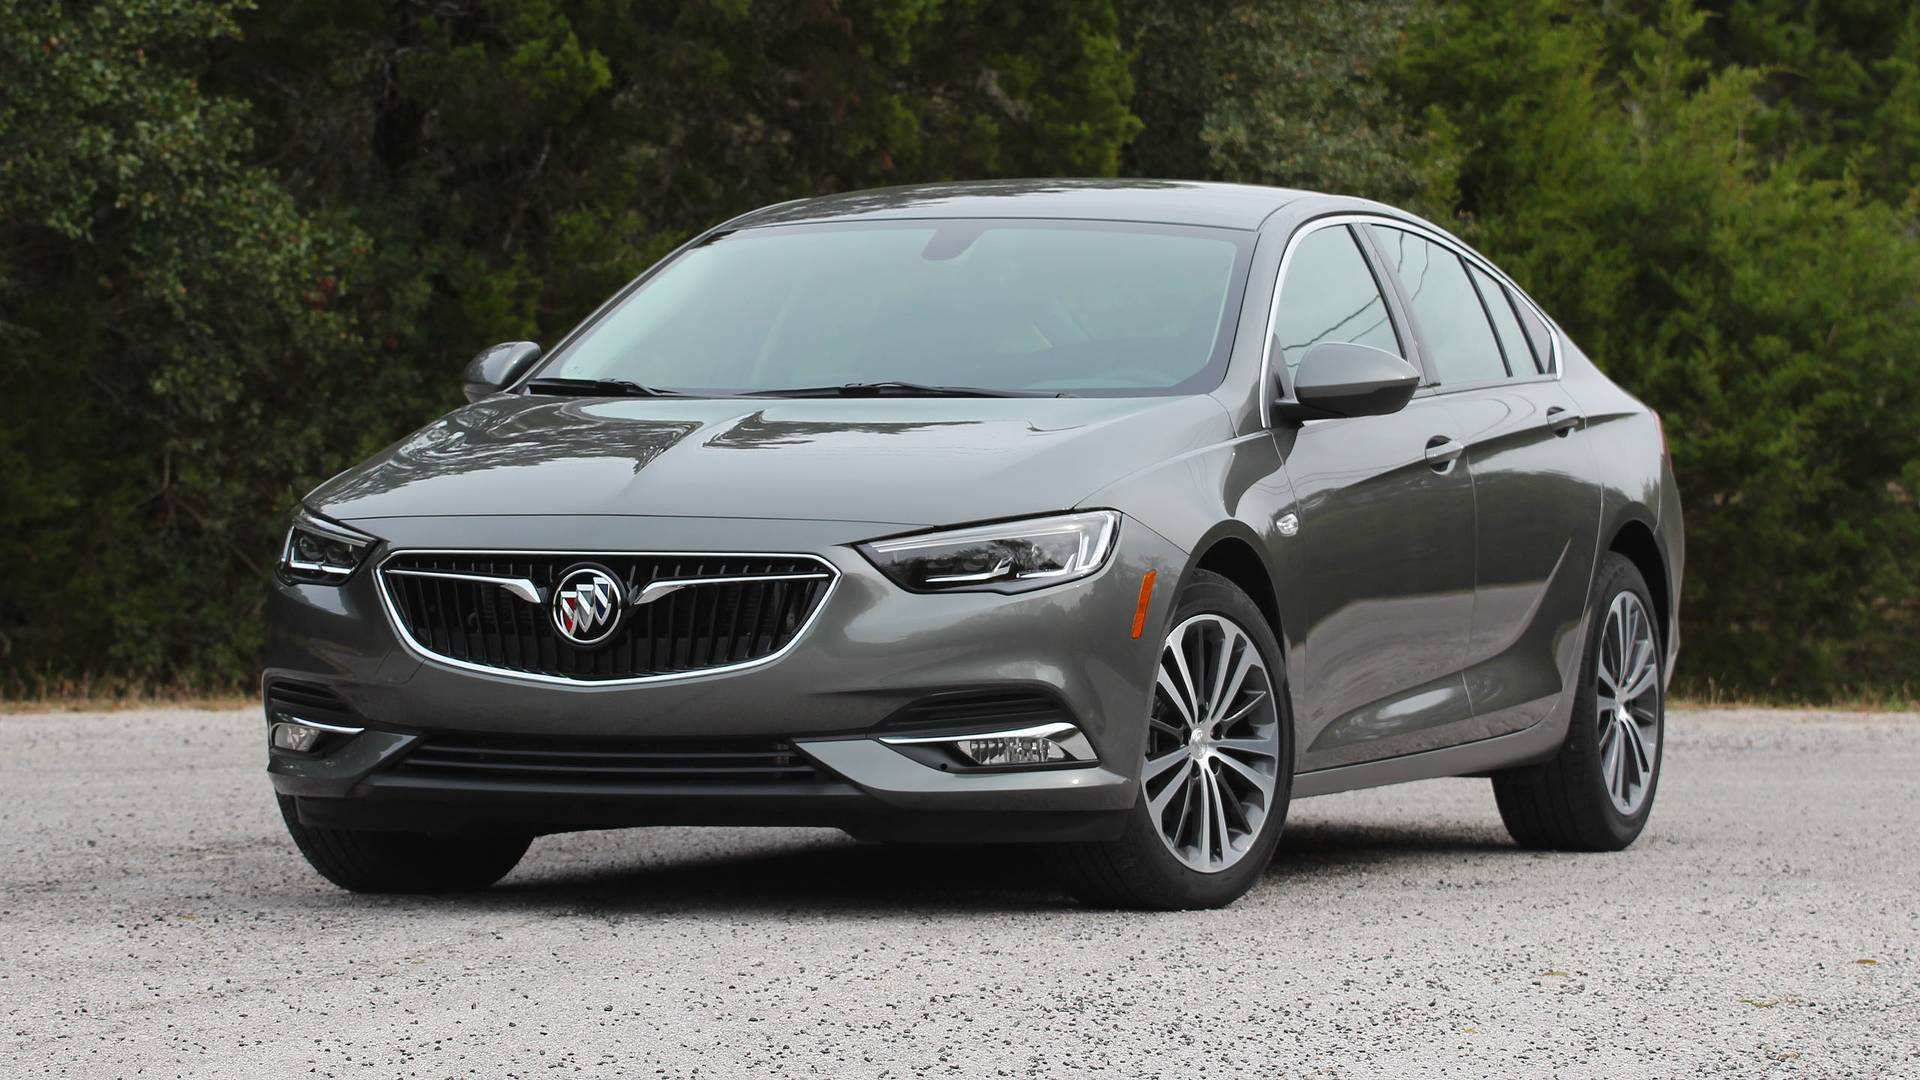 42 Gallery of Buick To Add Regal Sportback Avenir For 2019 Concept Redesign And Review Ratings by Buick To Add Regal Sportback Avenir For 2019 Concept Redesign And Review